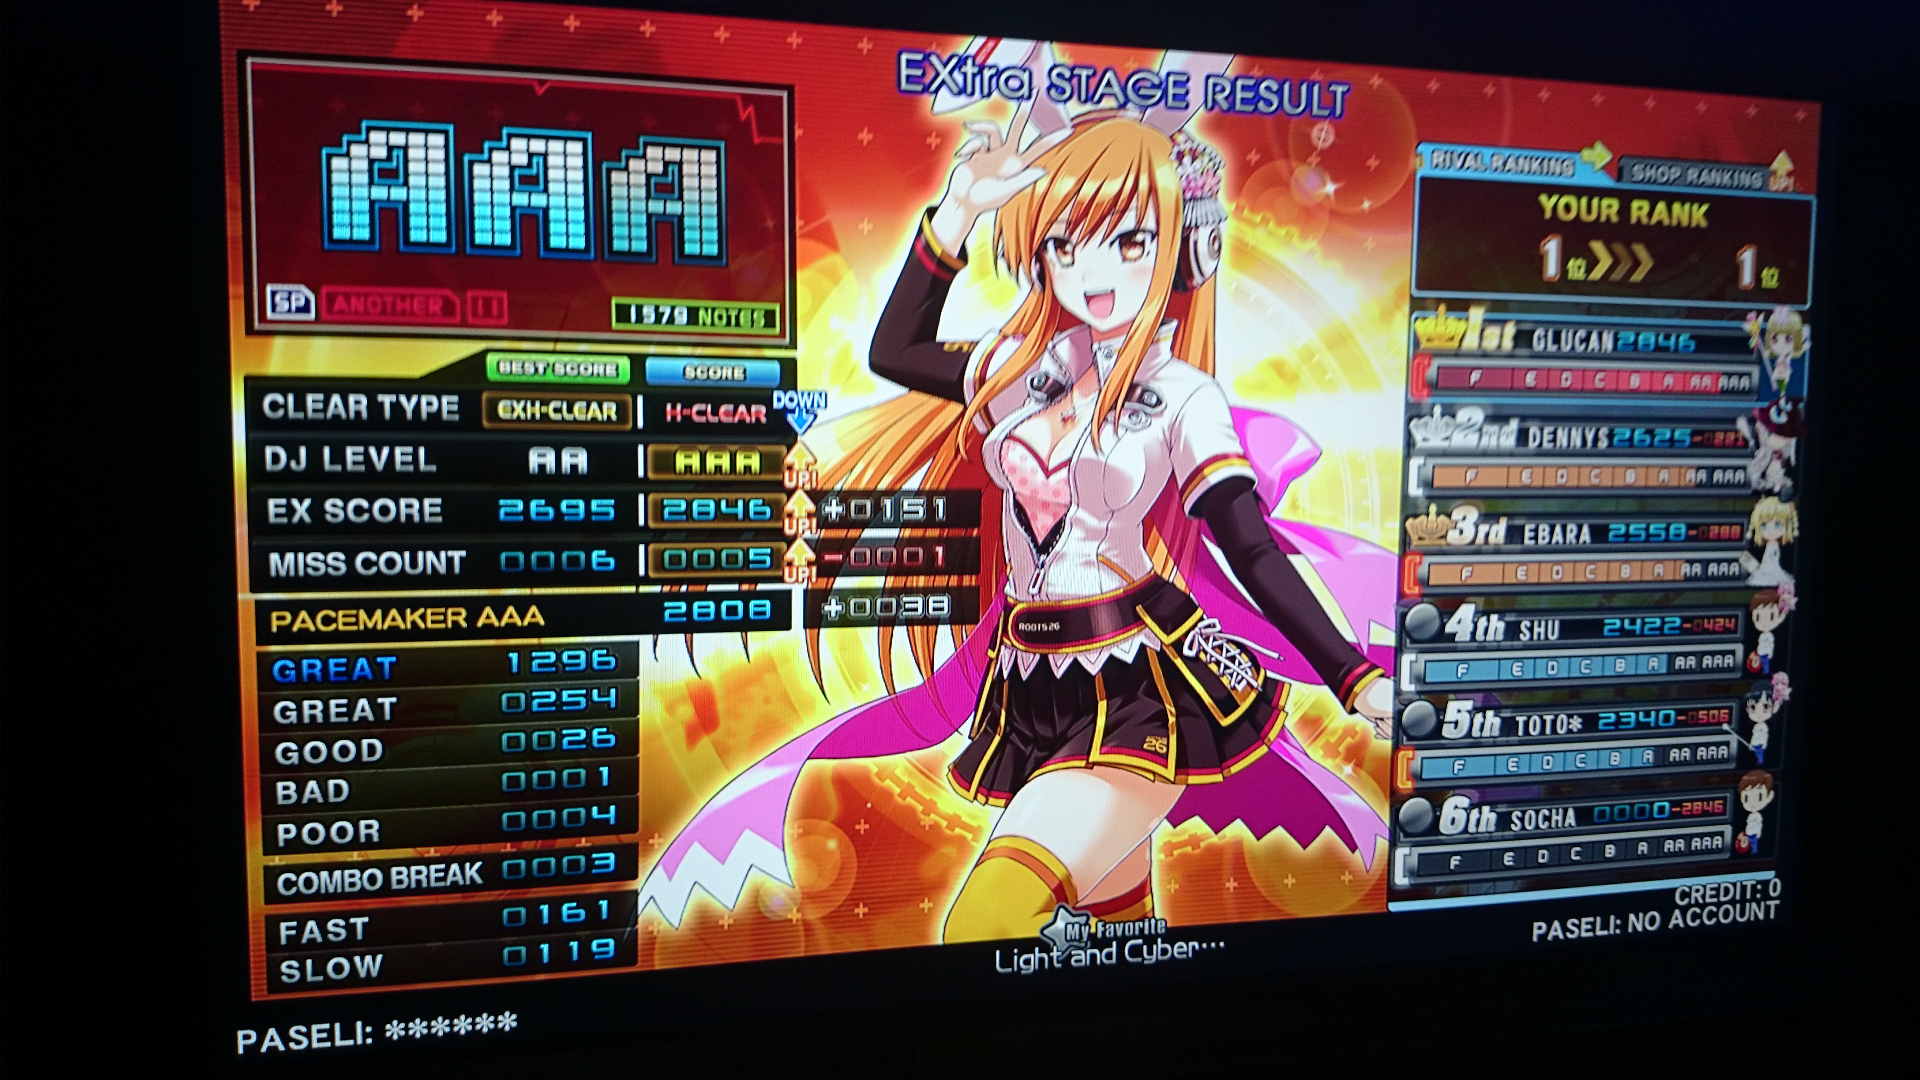 Light and Cyber鳥